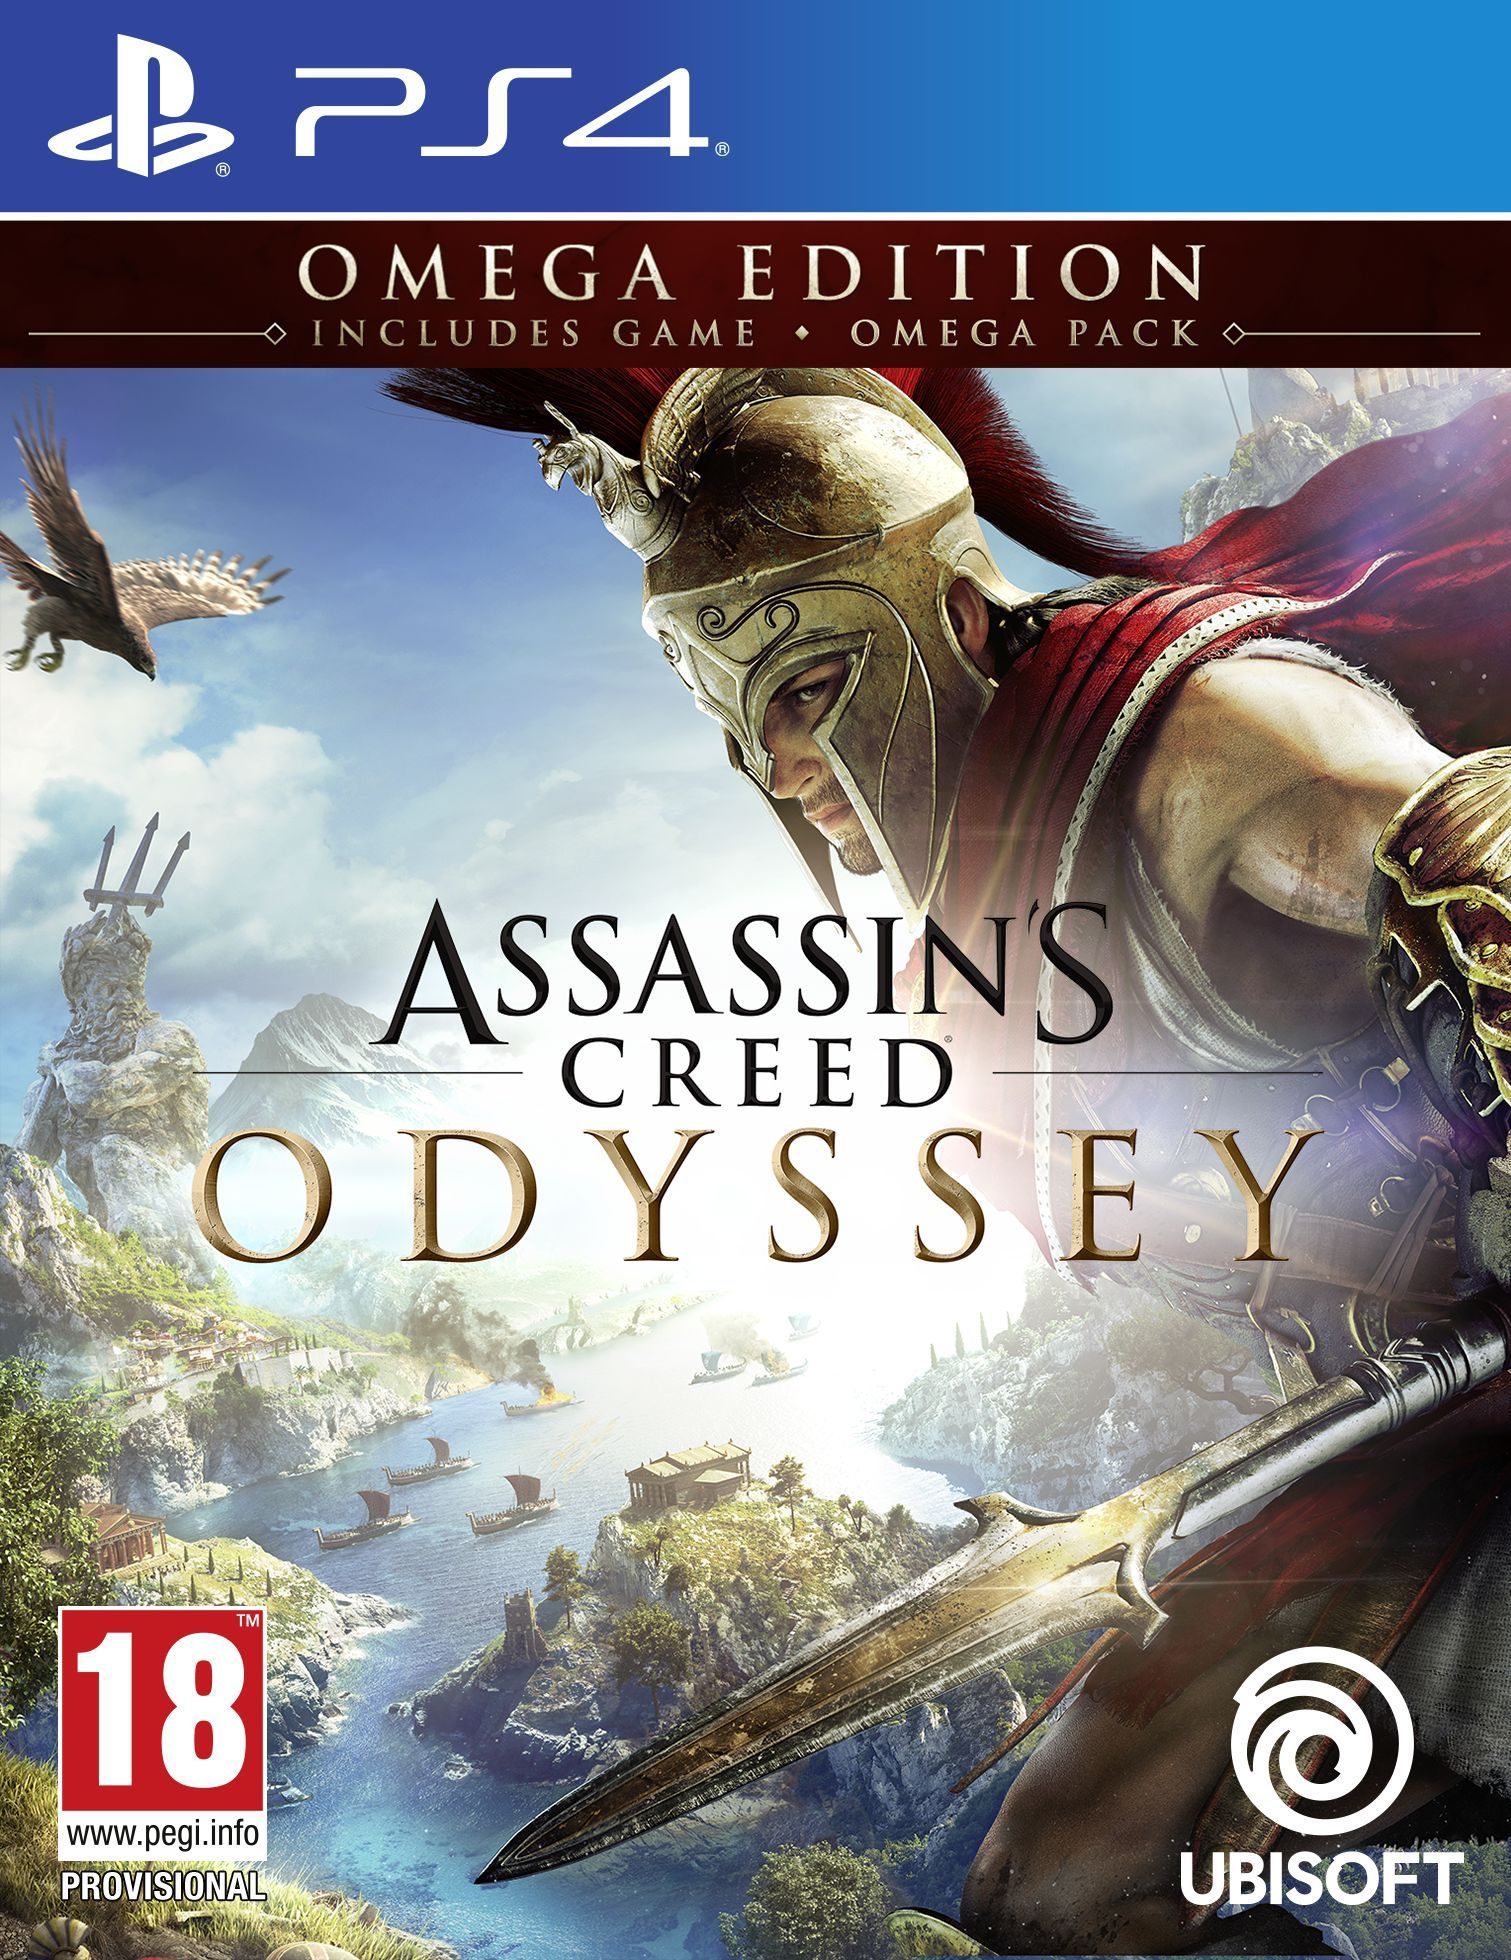 Assassin's Creed Odyssey Omega Edition (PS4) - 1